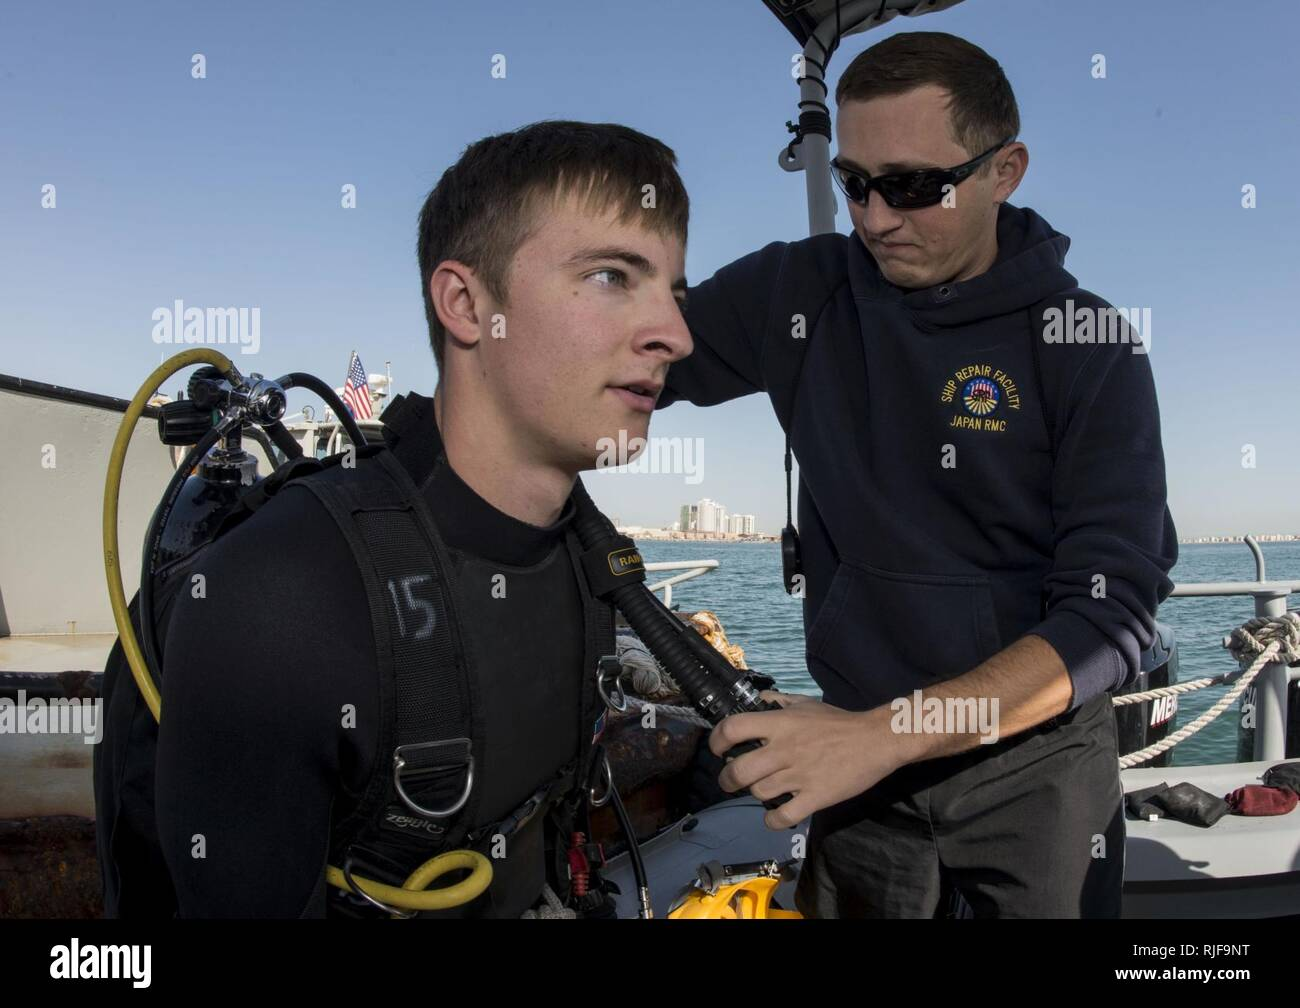 NAVAL SUPPORT ACTIVITY BAHRAIN (Jan. 06, 2016) Navy Diver 1st Class Scott Colvin conducts gear checks on Navy Diver 3rd Class Darren Hauk, assigned to Commander, Task Group (CTG) 56.1, prior to conducting an anti-terrorism force protection dive. CTG 56.1 conducts mine countermeasures, explosive ordnance disposal, salvage-diving and force protection operations throughout the U.S. 5th Fleet area of operations. Stock Photo